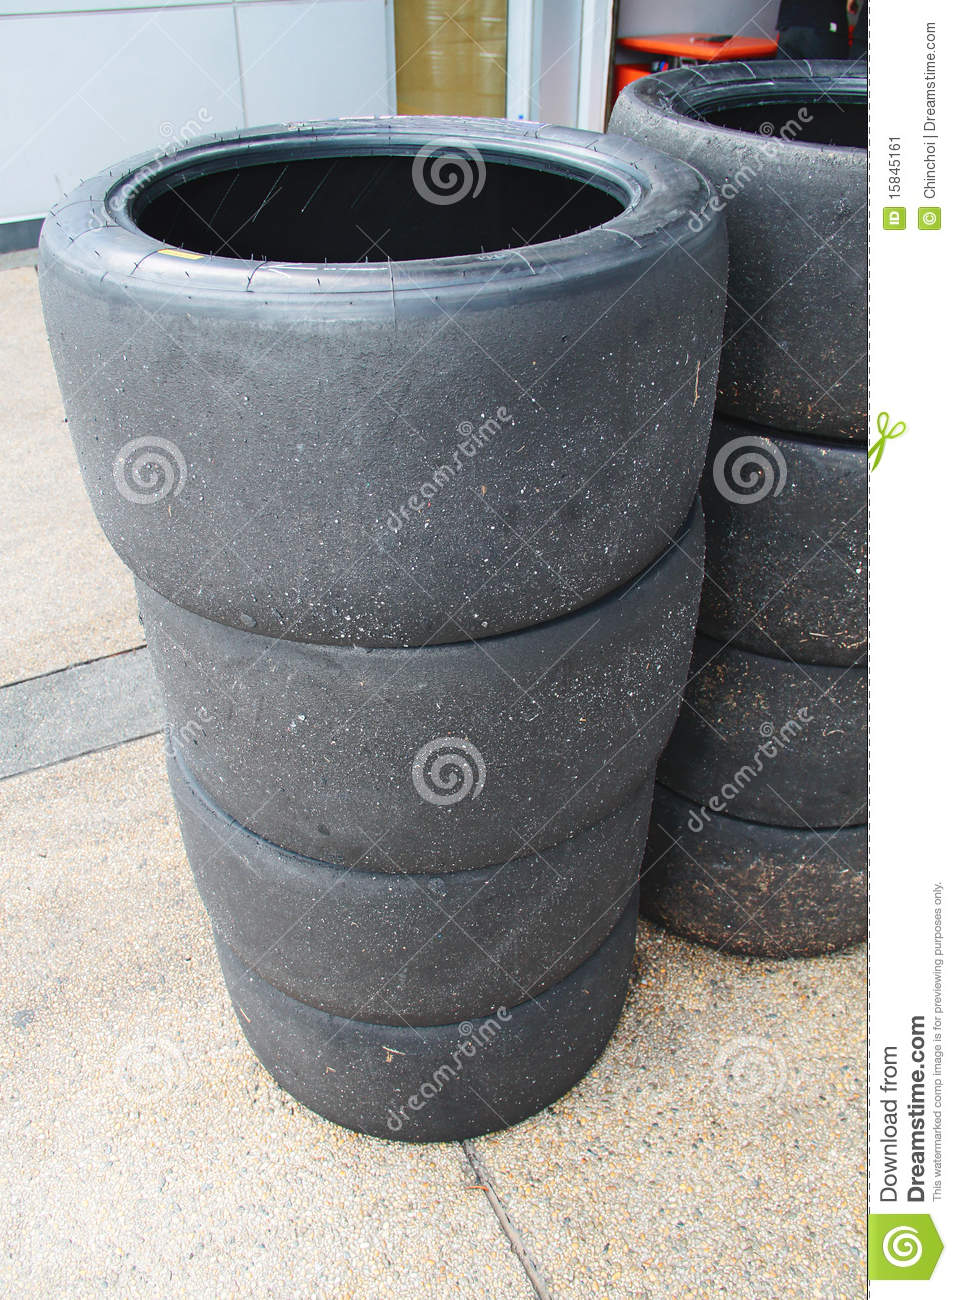 Stack Of Worn Racing Tyres Stock Image - Image: 15845161 Race Tire Stack